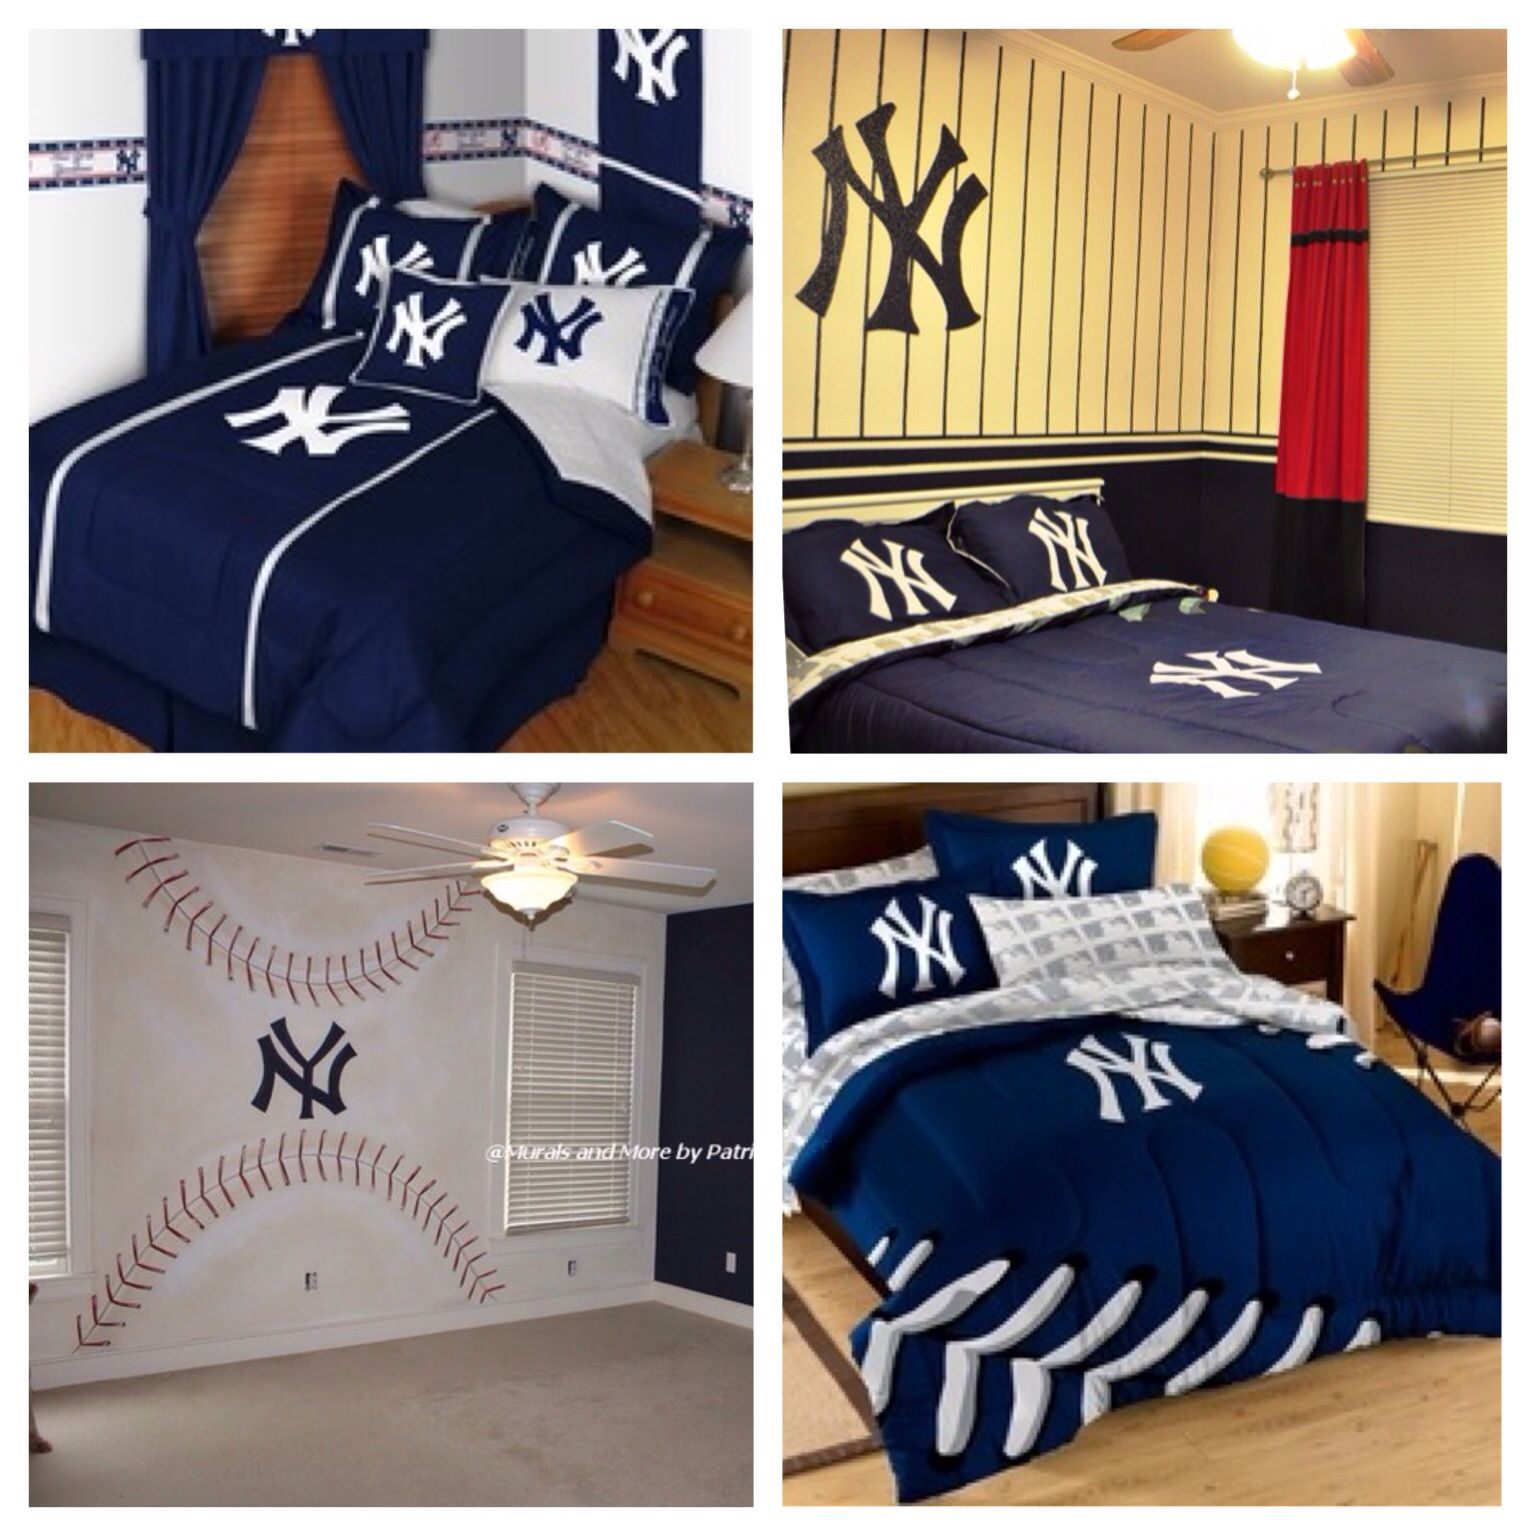 new york yankees bedroom for boys decor ideas - New York Yankees Bedroom Decor